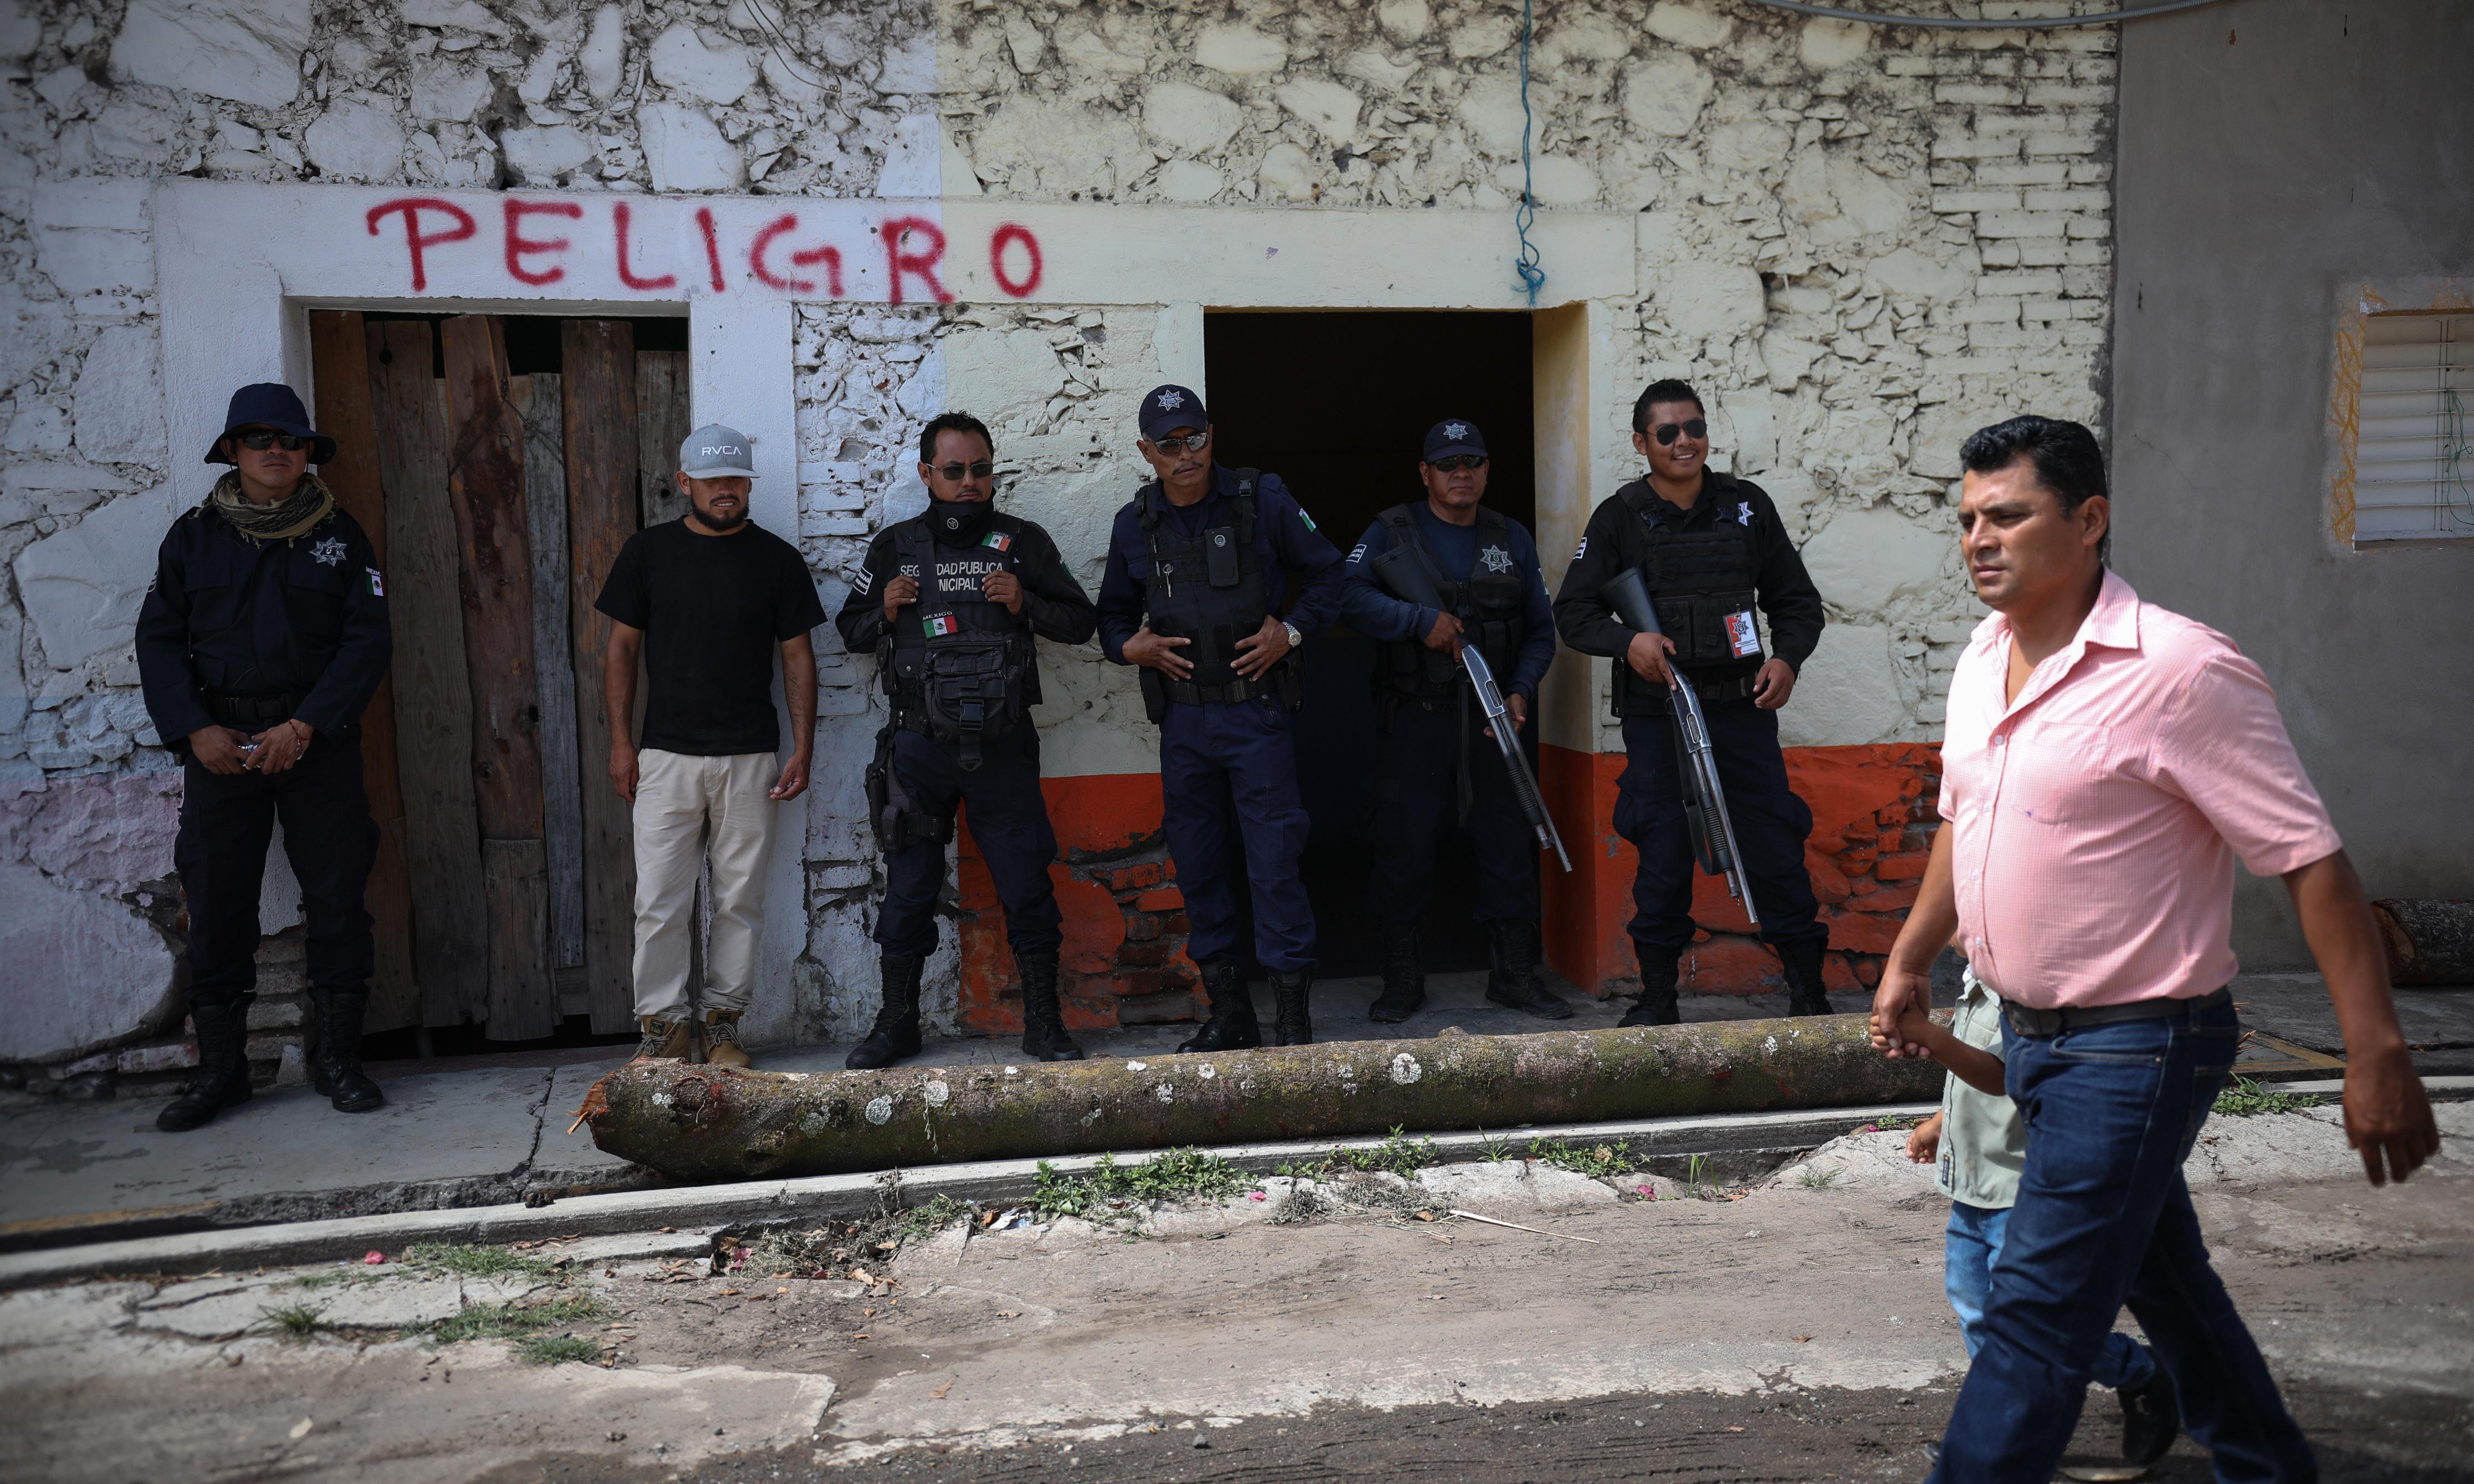 'People have had enough': Mexican town that lynched alleged kidnappers